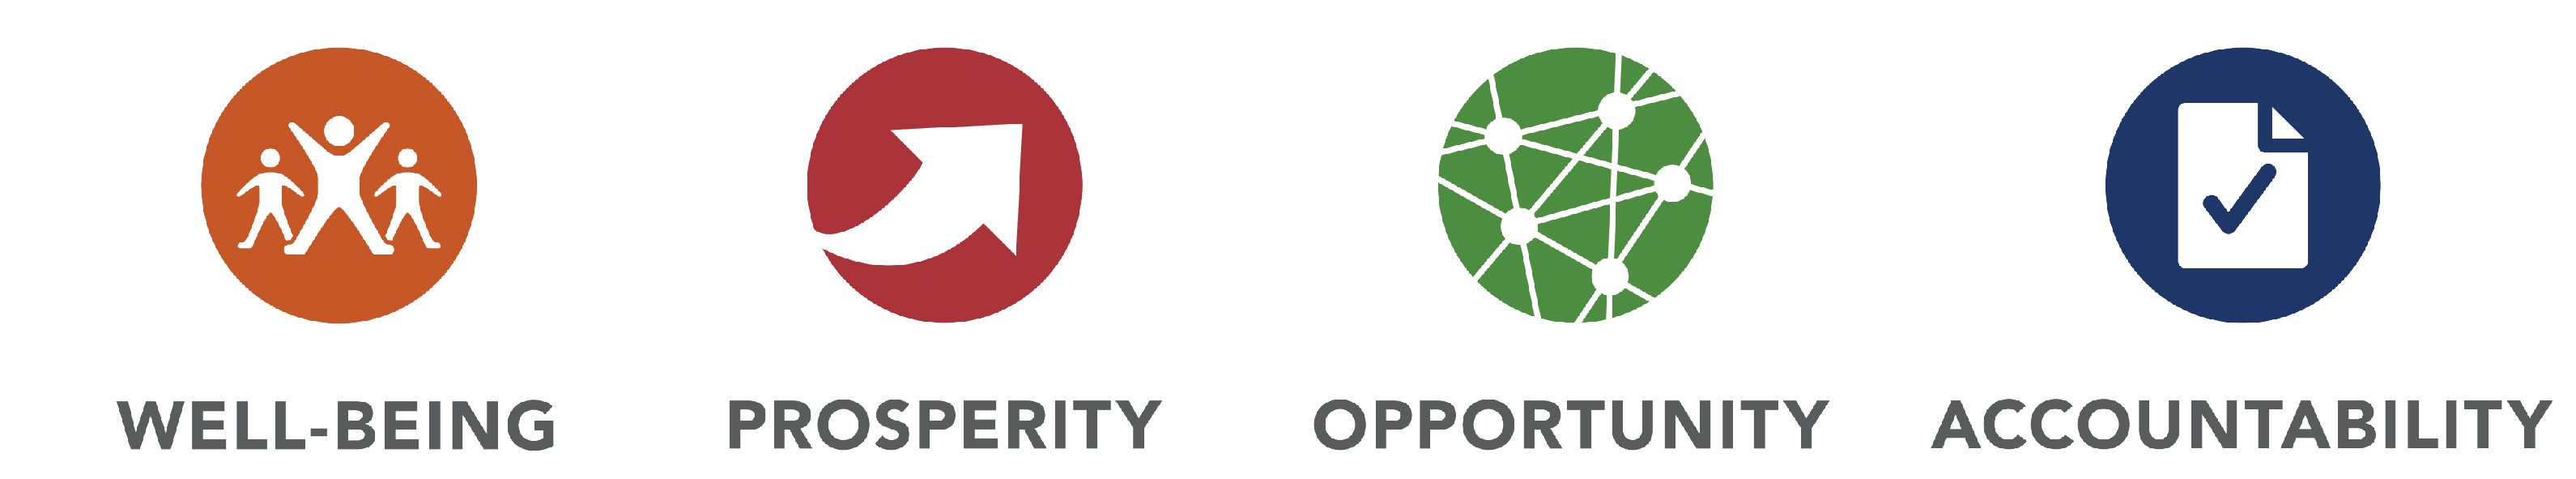 Ramsey County's four goals are well-being, prosperity, opportunity and accountability